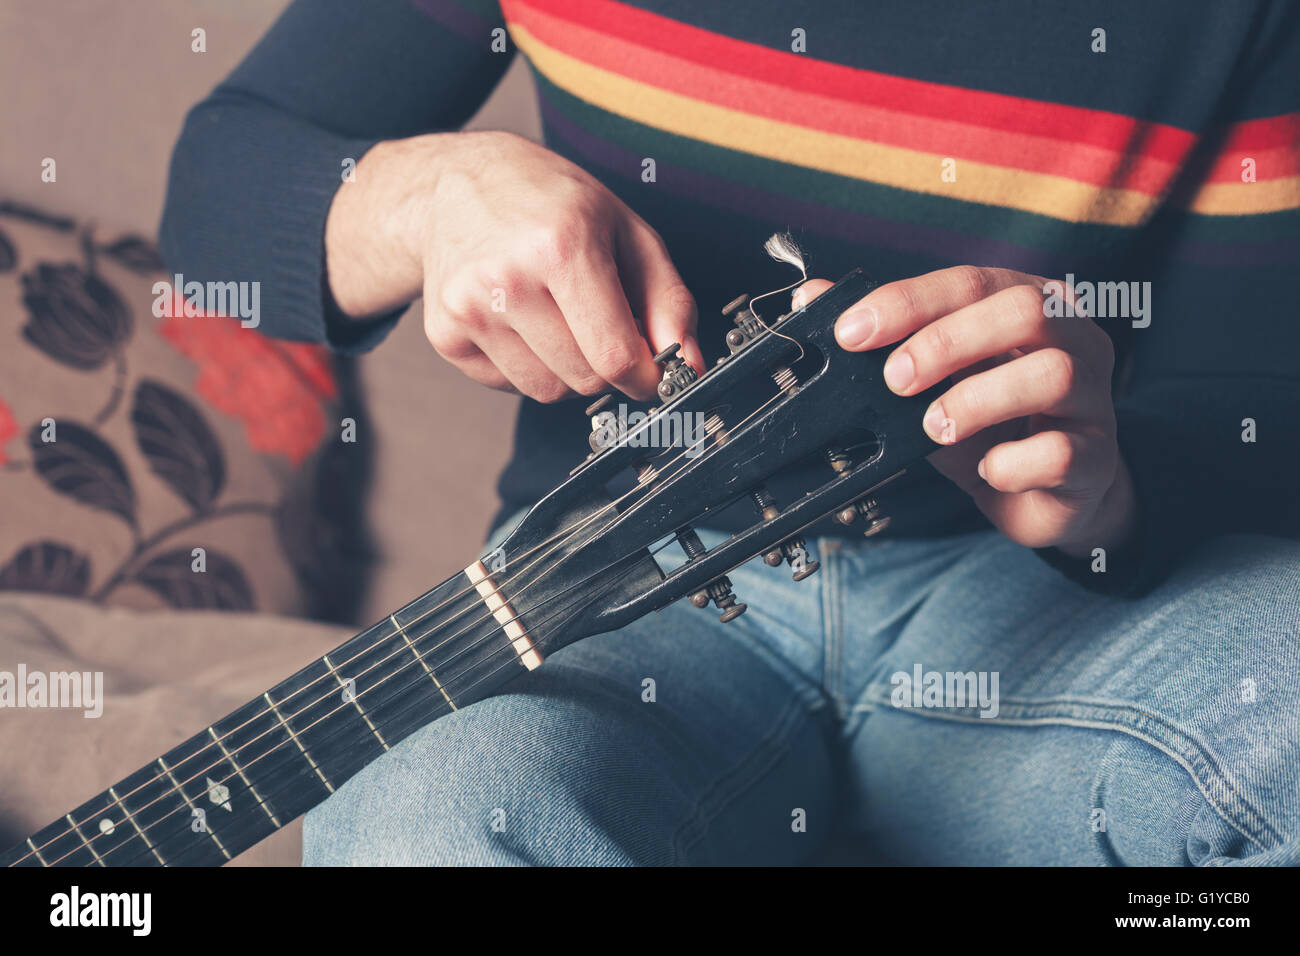 A young man is sitting on a sofa and is tuning a guitar - Stock Image